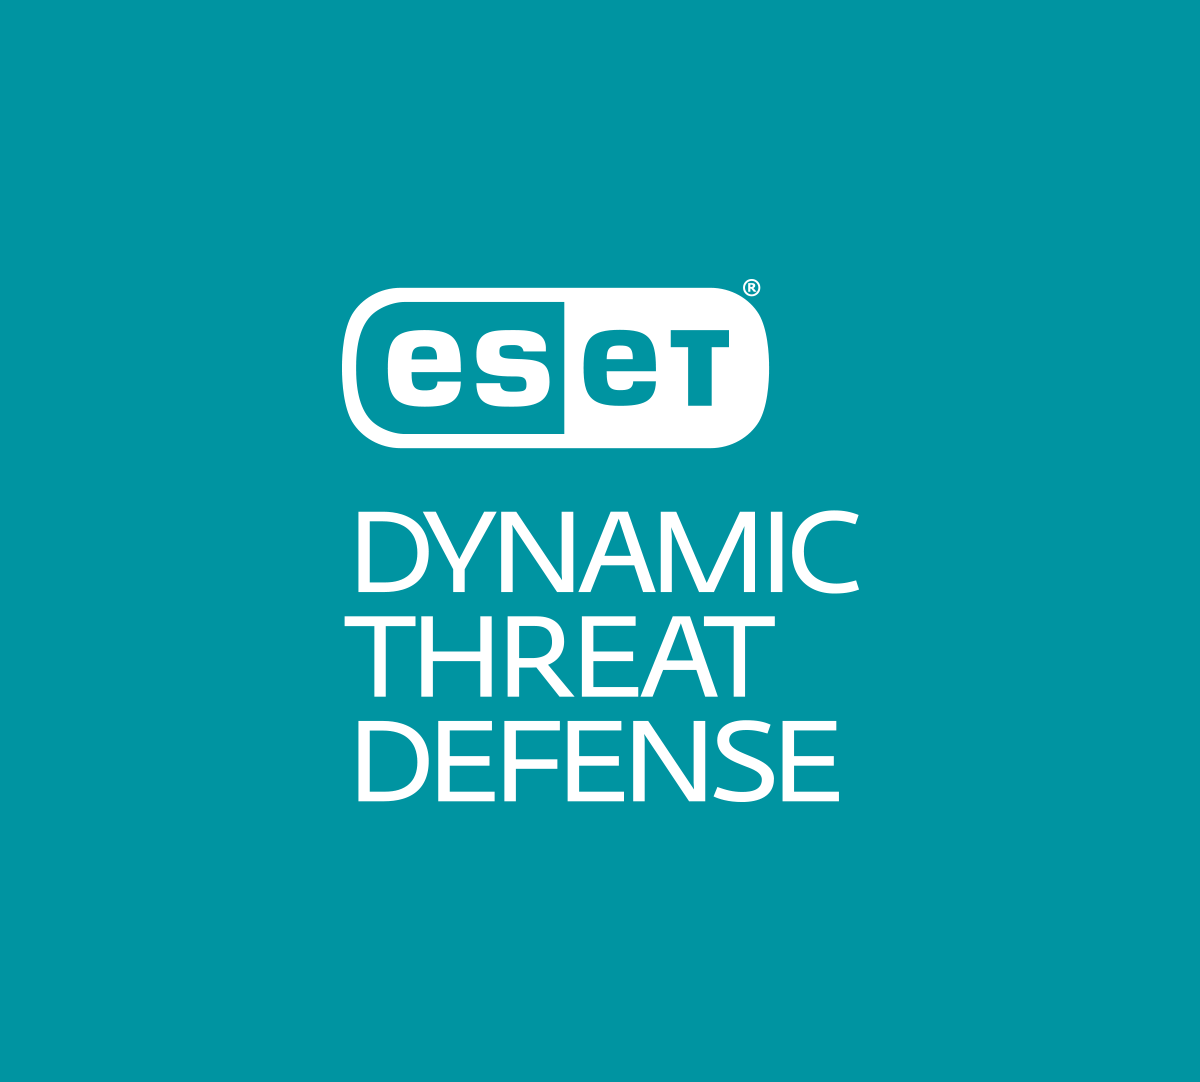 ESET Dynamic Threat Defence